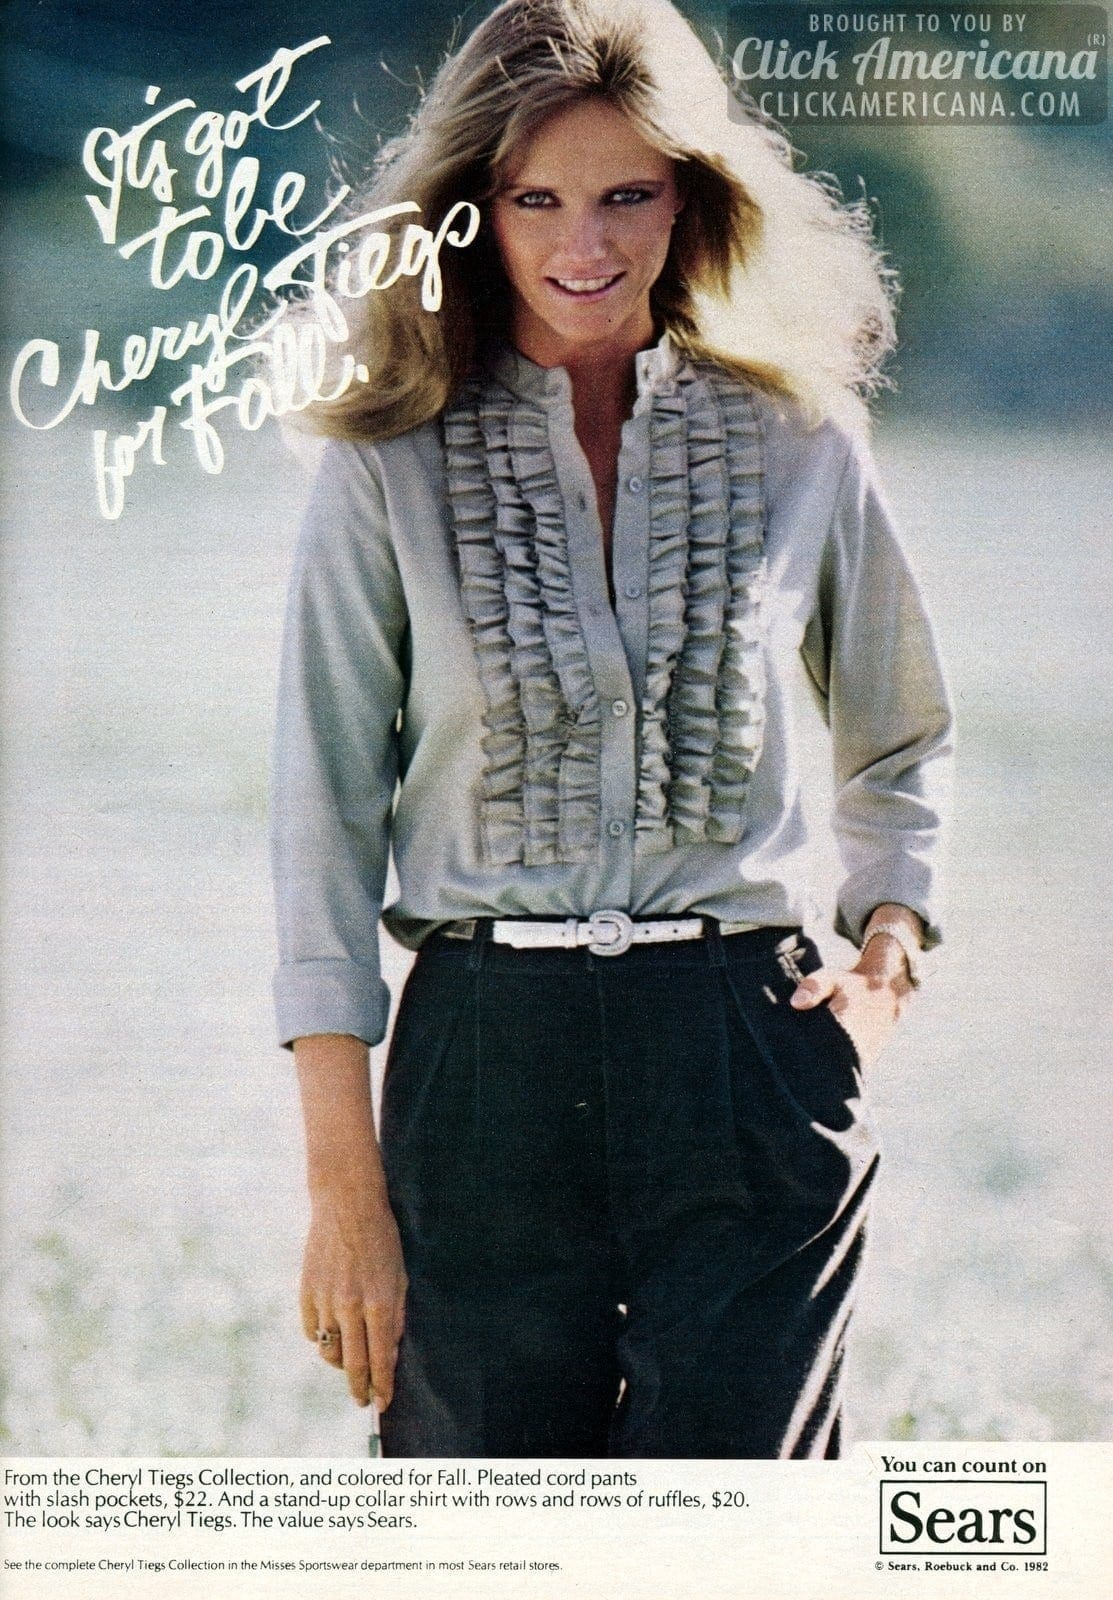 Cheryl Tiegs Clothing Collection For Sears 1982 Click